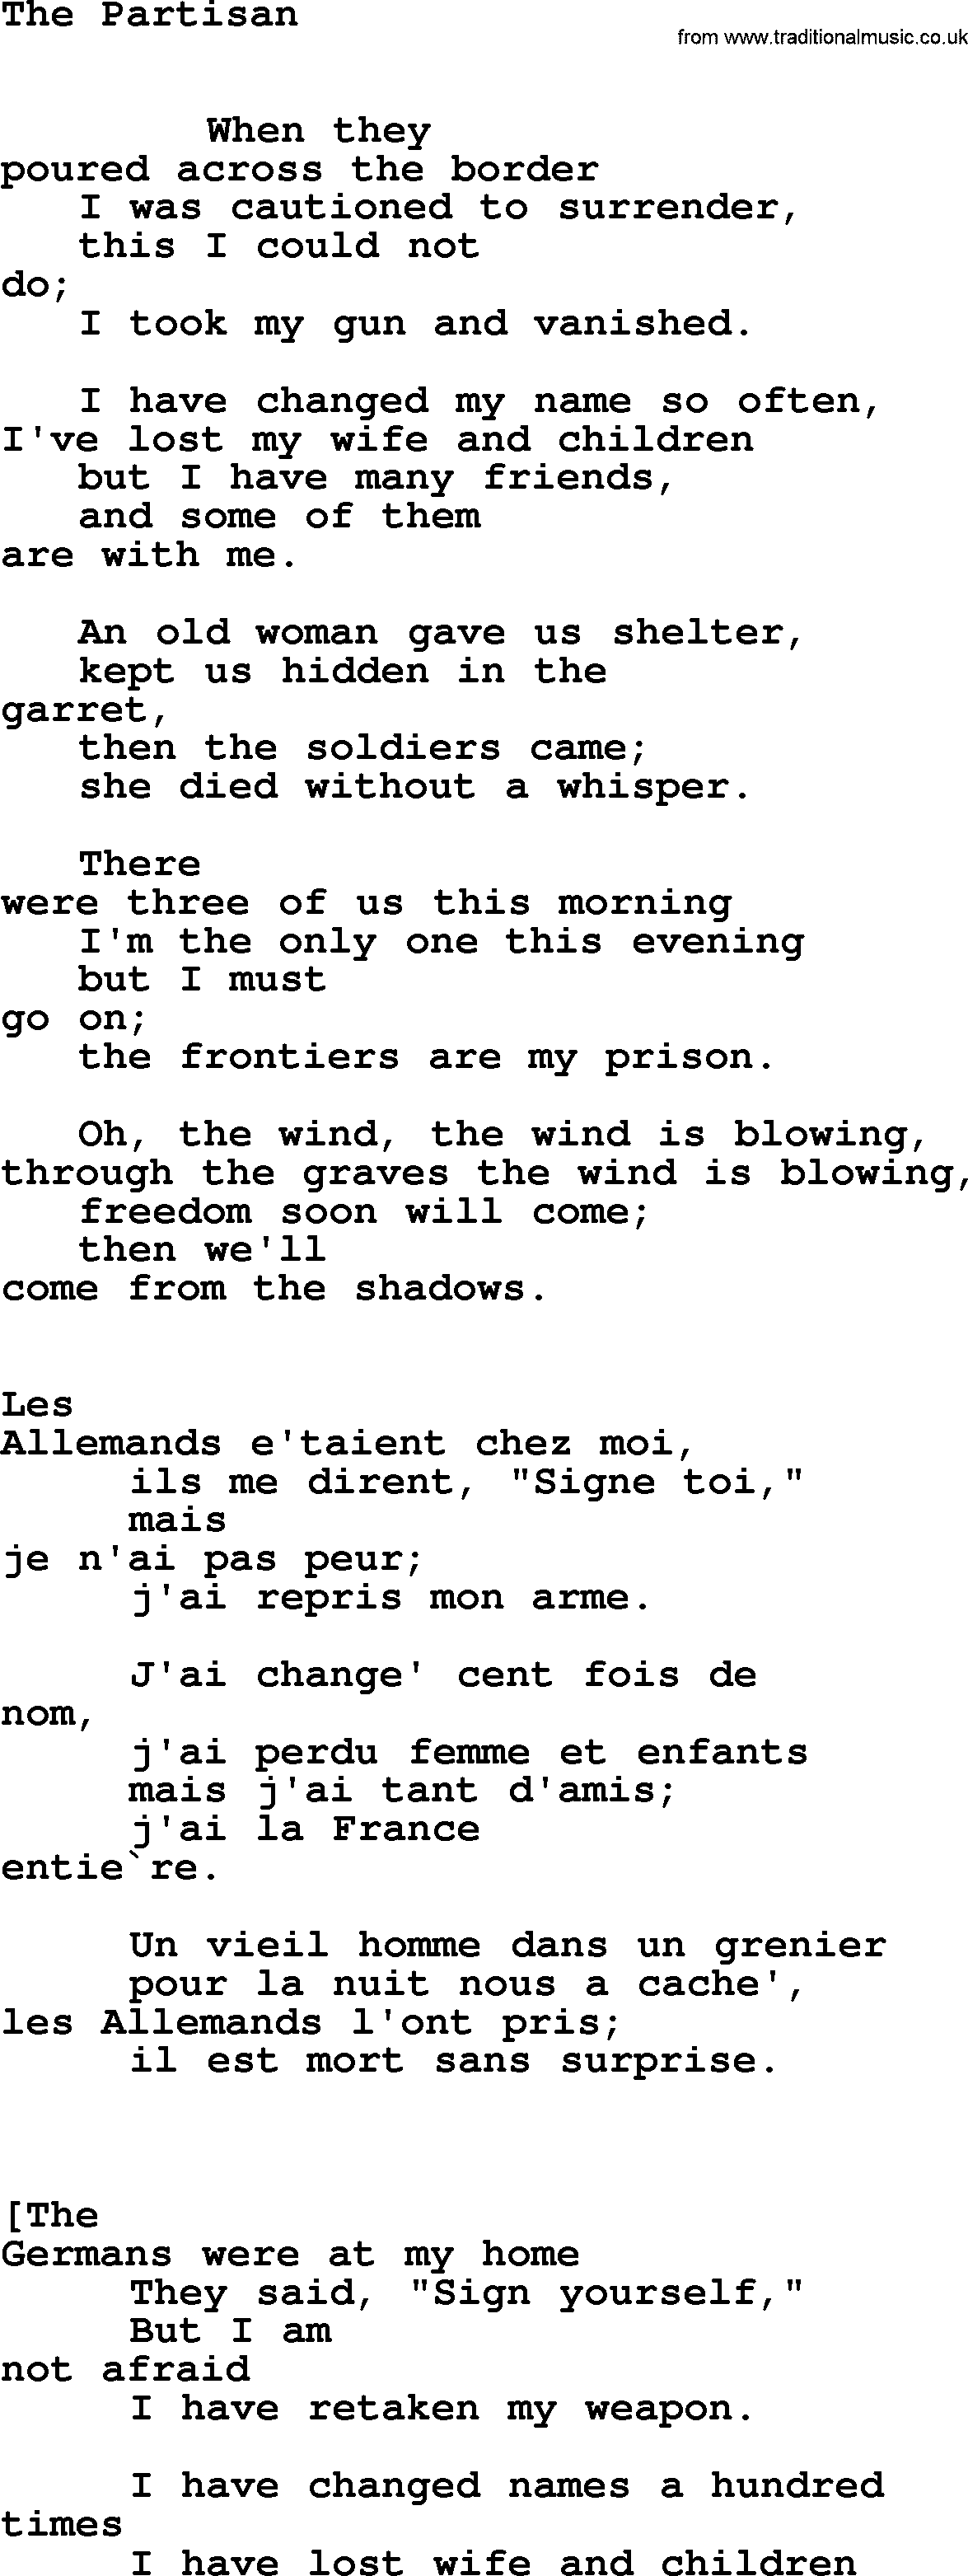 Leonard Cohen song: Partisan lyrics